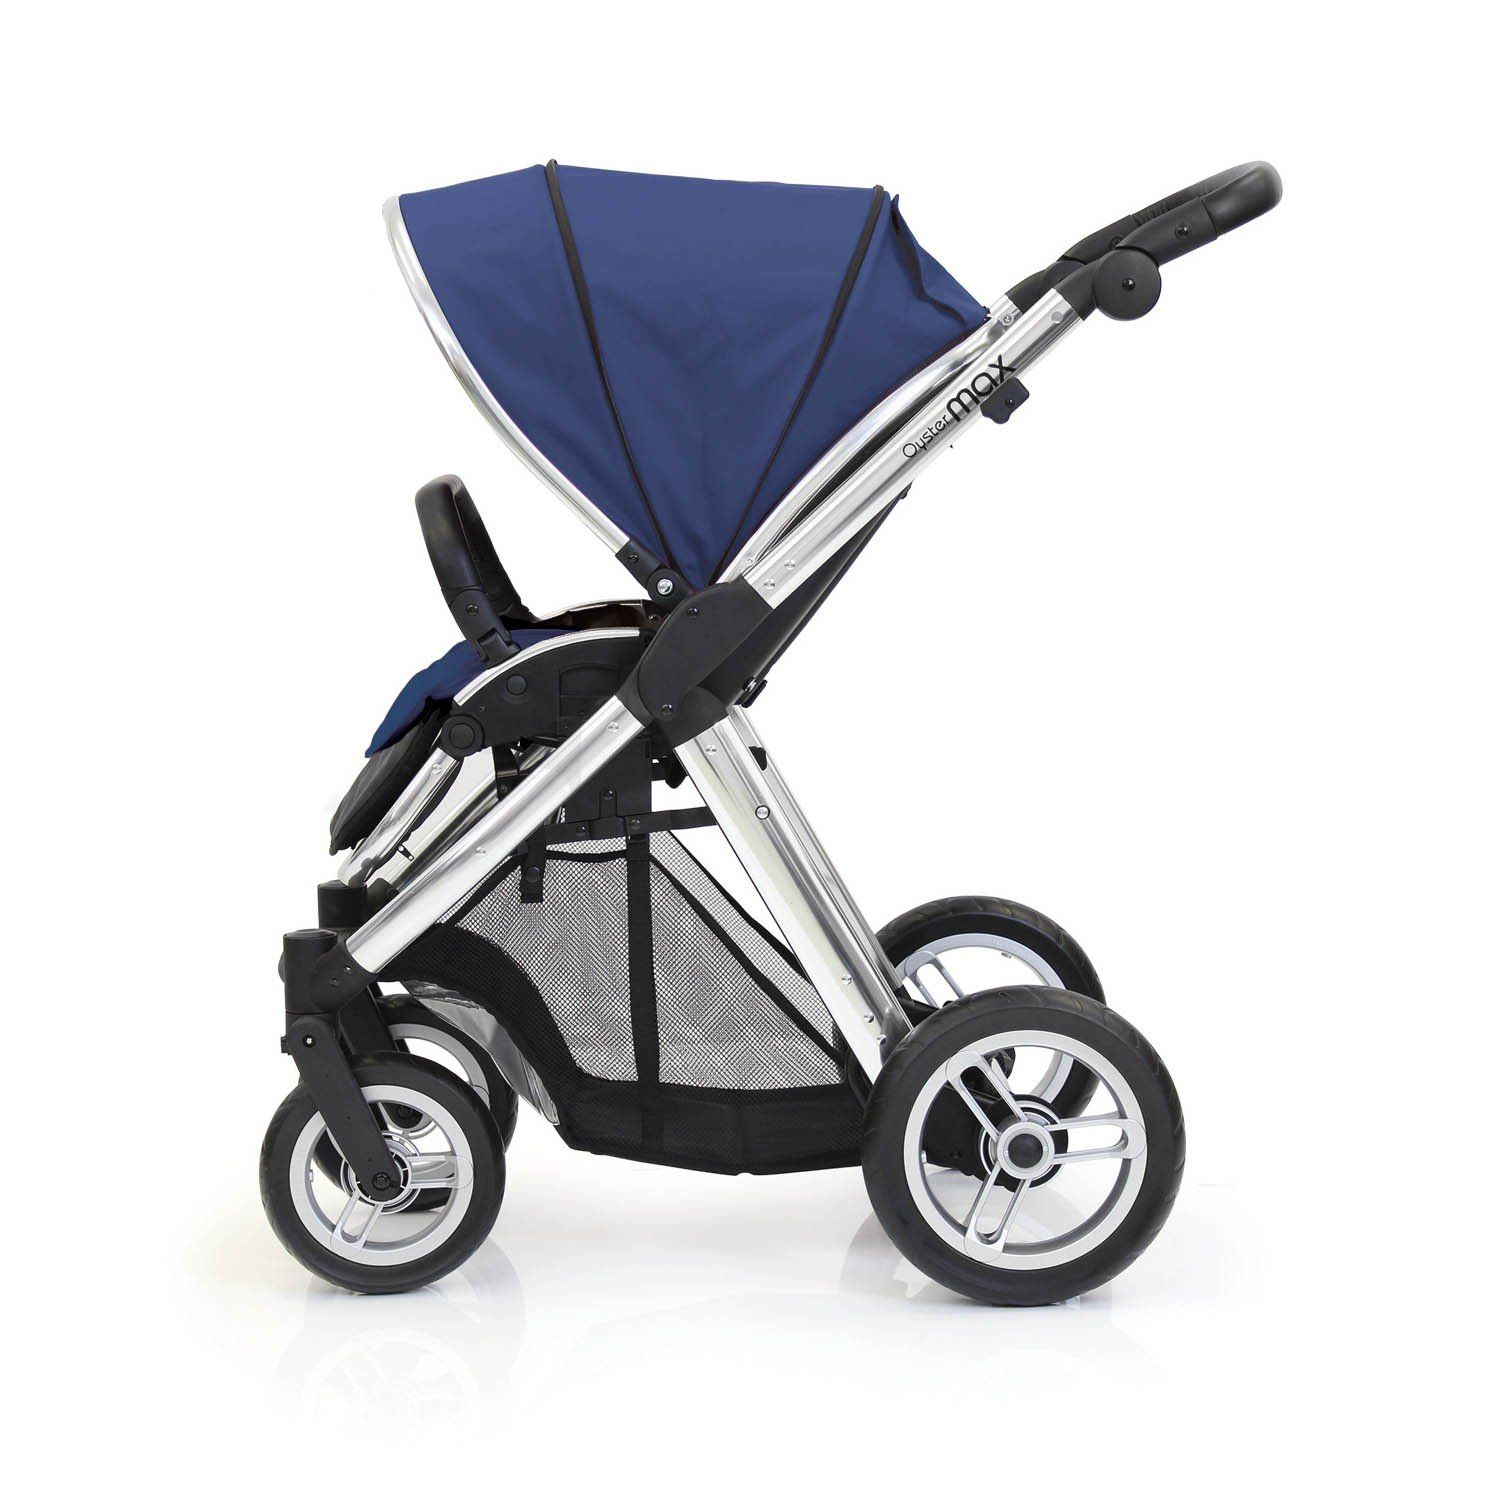 £429.00 The Babystyle Oyster MAX is a single stroller that